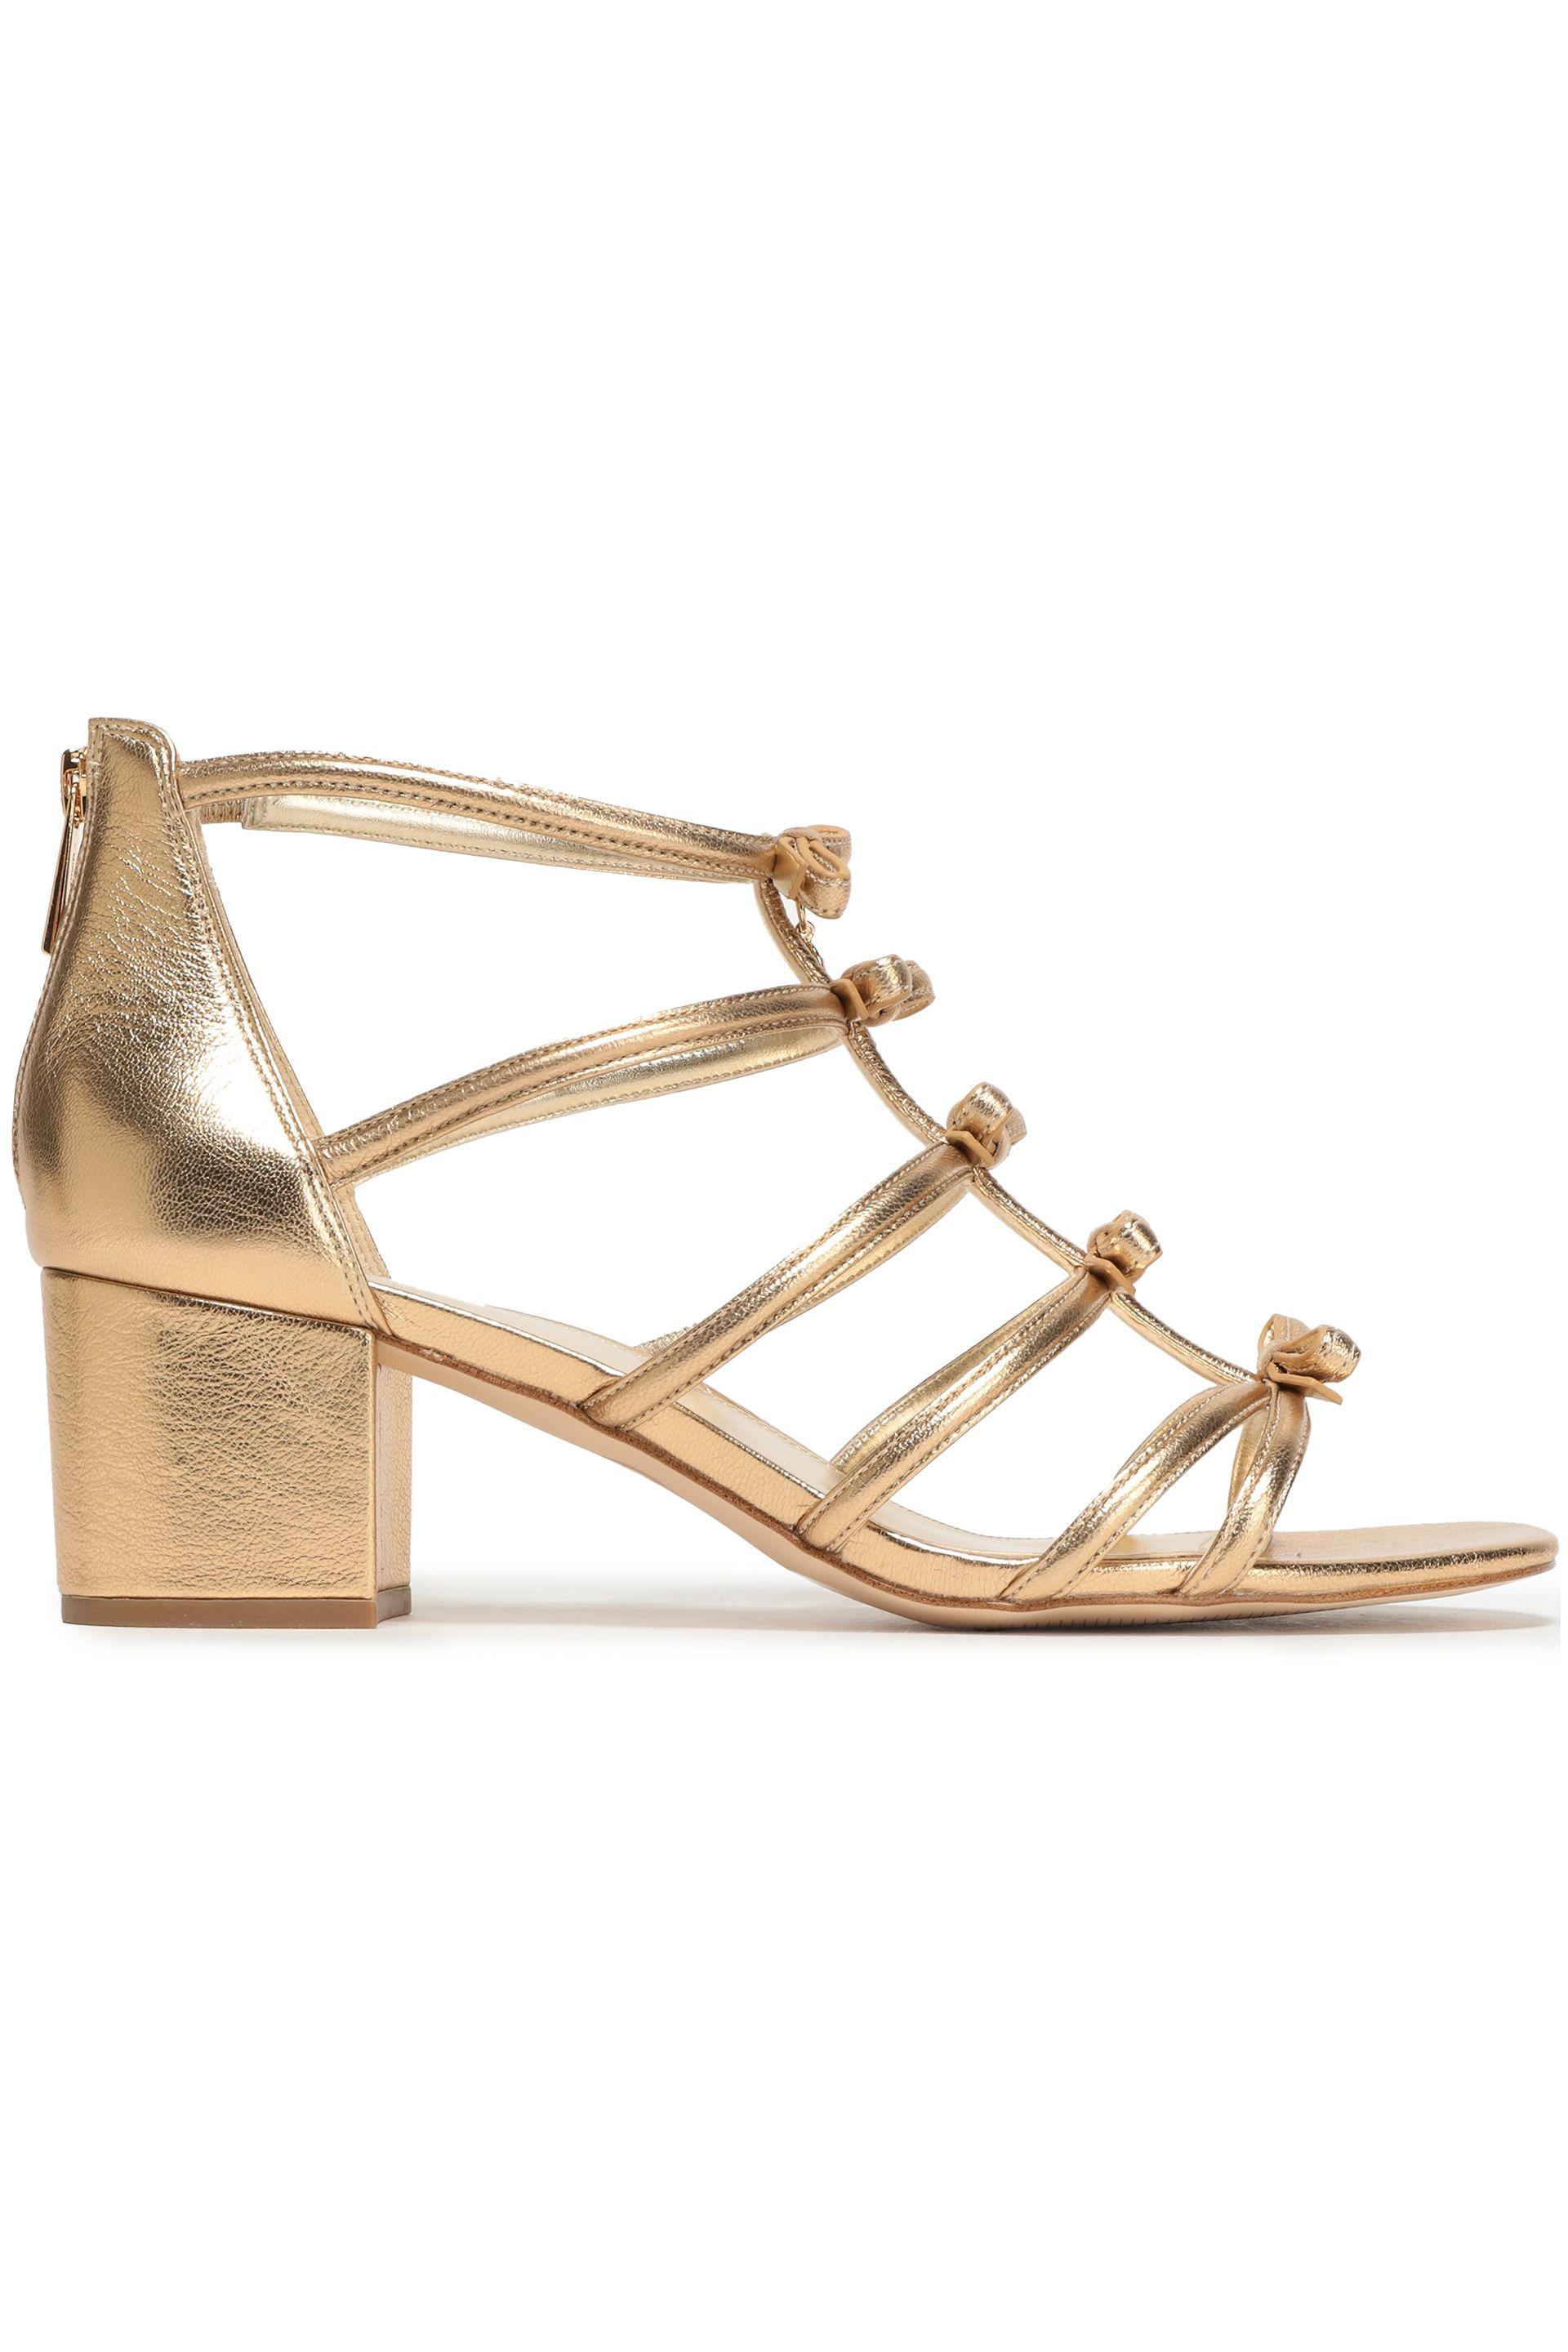 ccce39003cc MICHAEL Michael Kors. Women s Woman Bow-embellished Metallic Leather Sandals  Gold